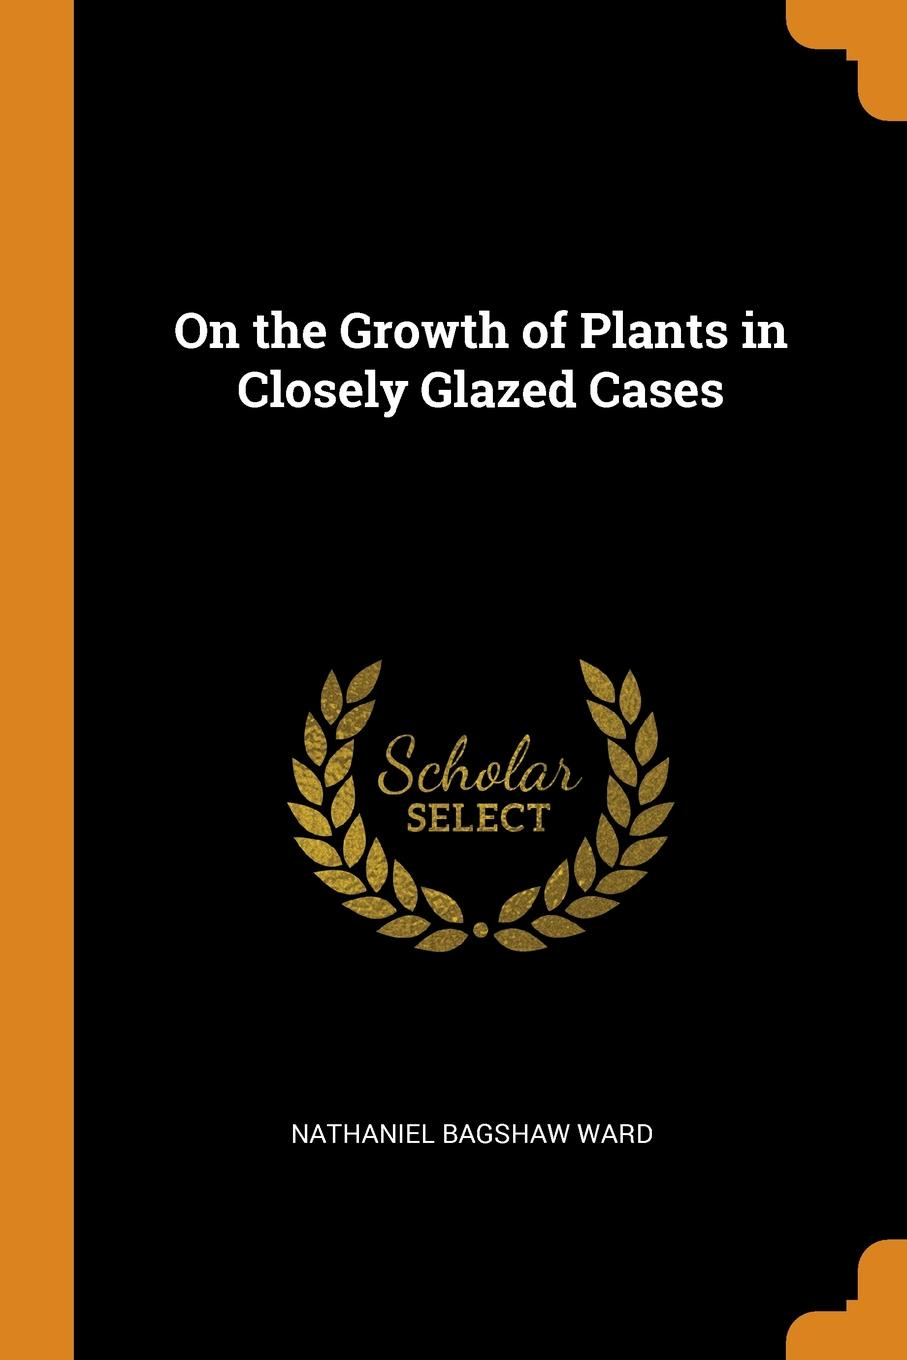 Nathaniel Bagshaw Ward. On the Growth of Plants in Closely Glazed Cases